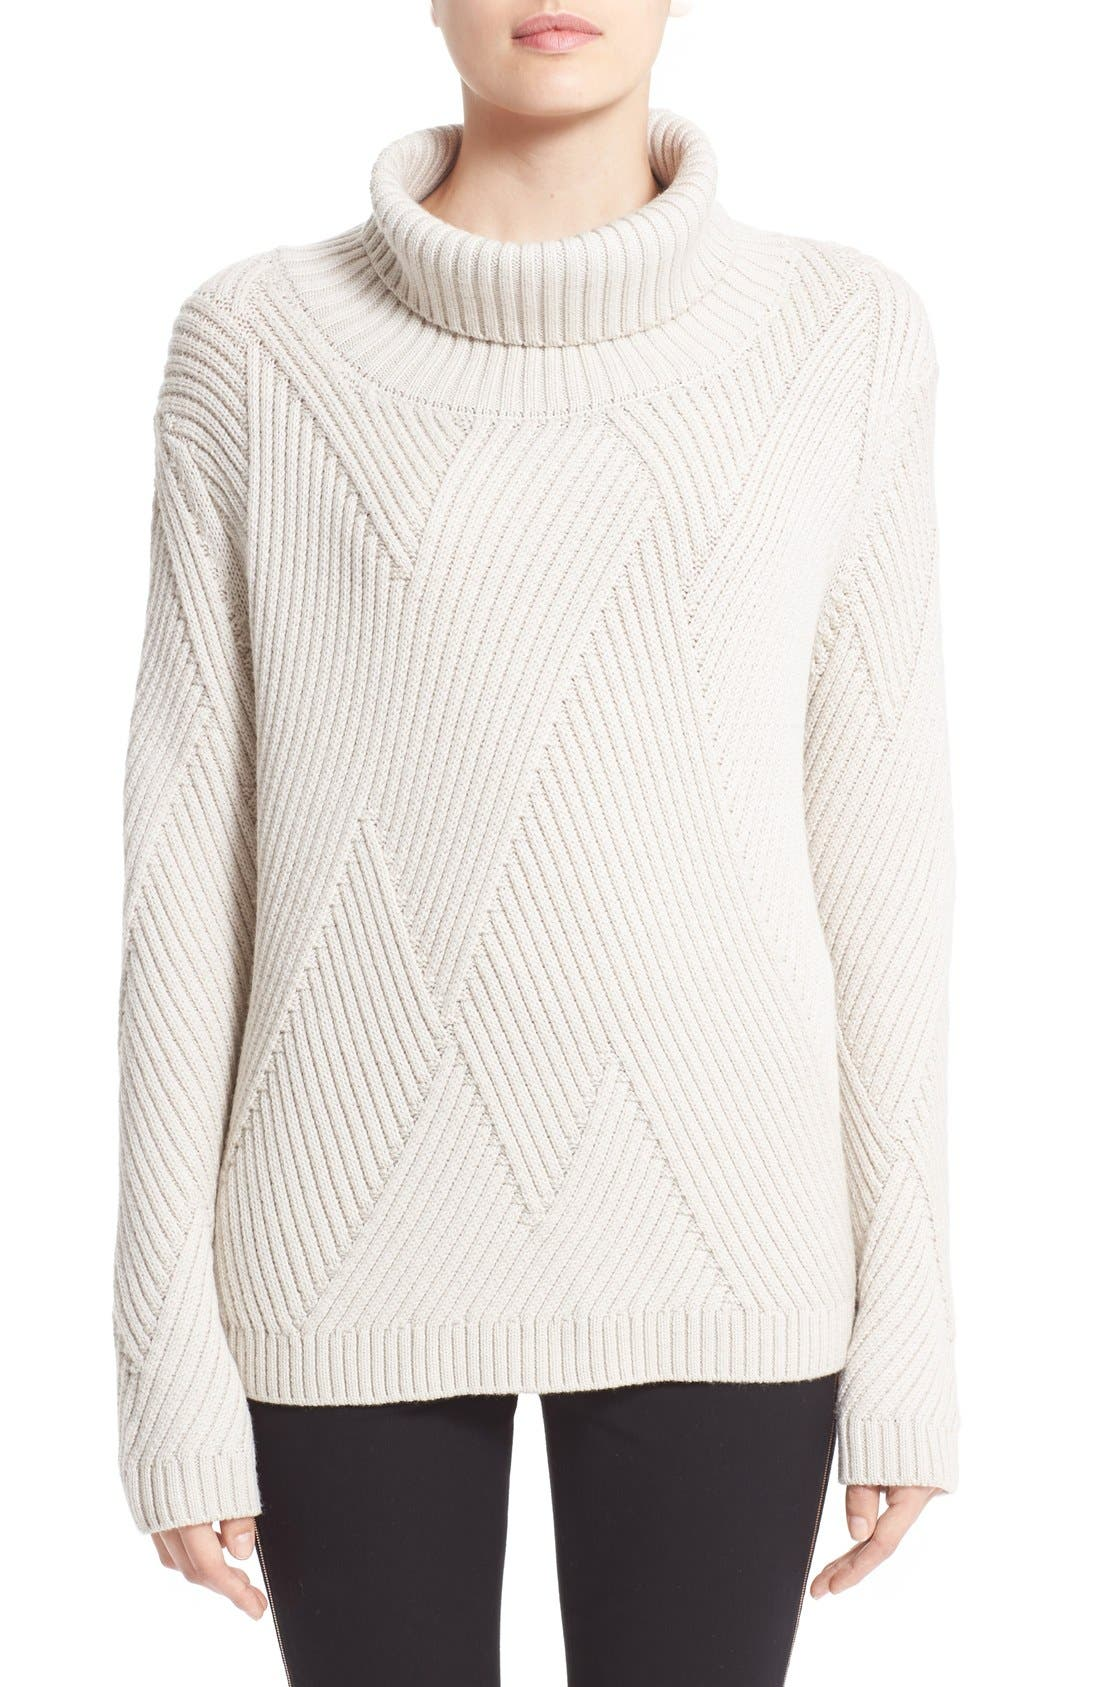 Main Image - rag & bone 'Blithe' Merino Wool Turtleneck Sweater